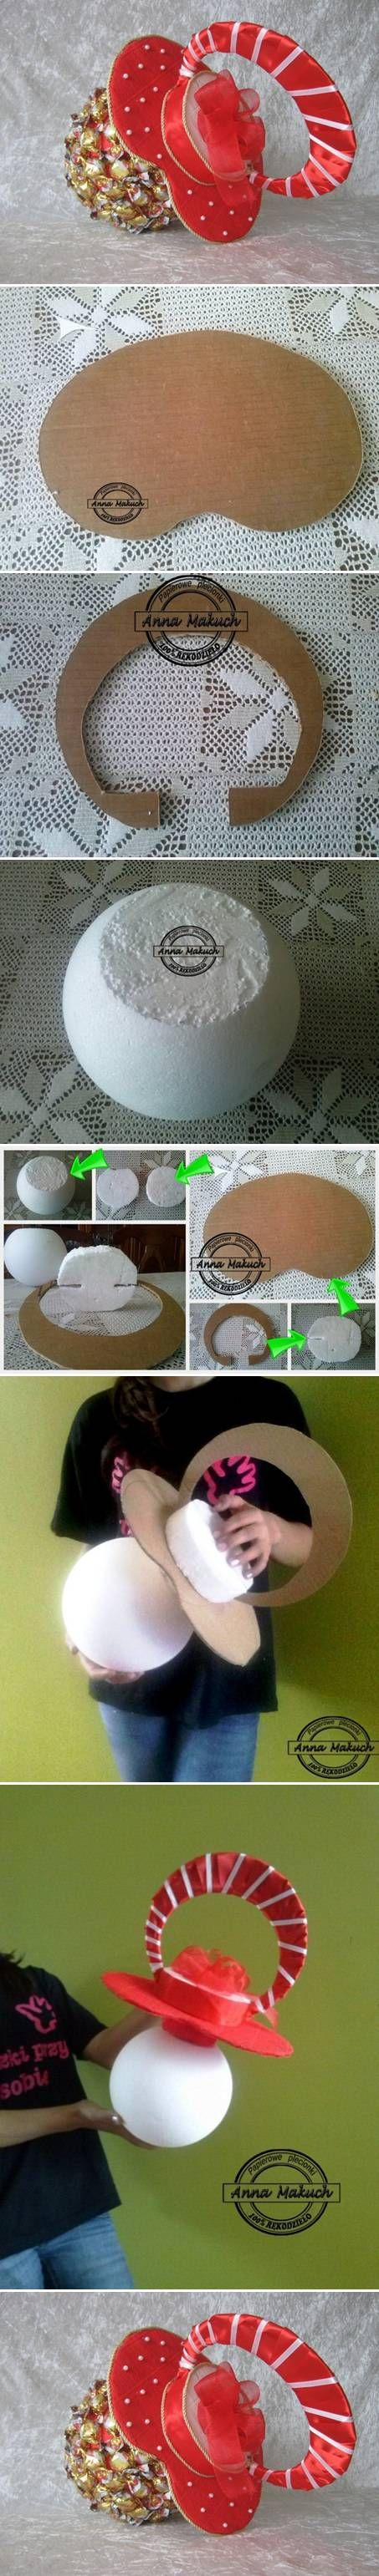 DIY Candy Pacifier